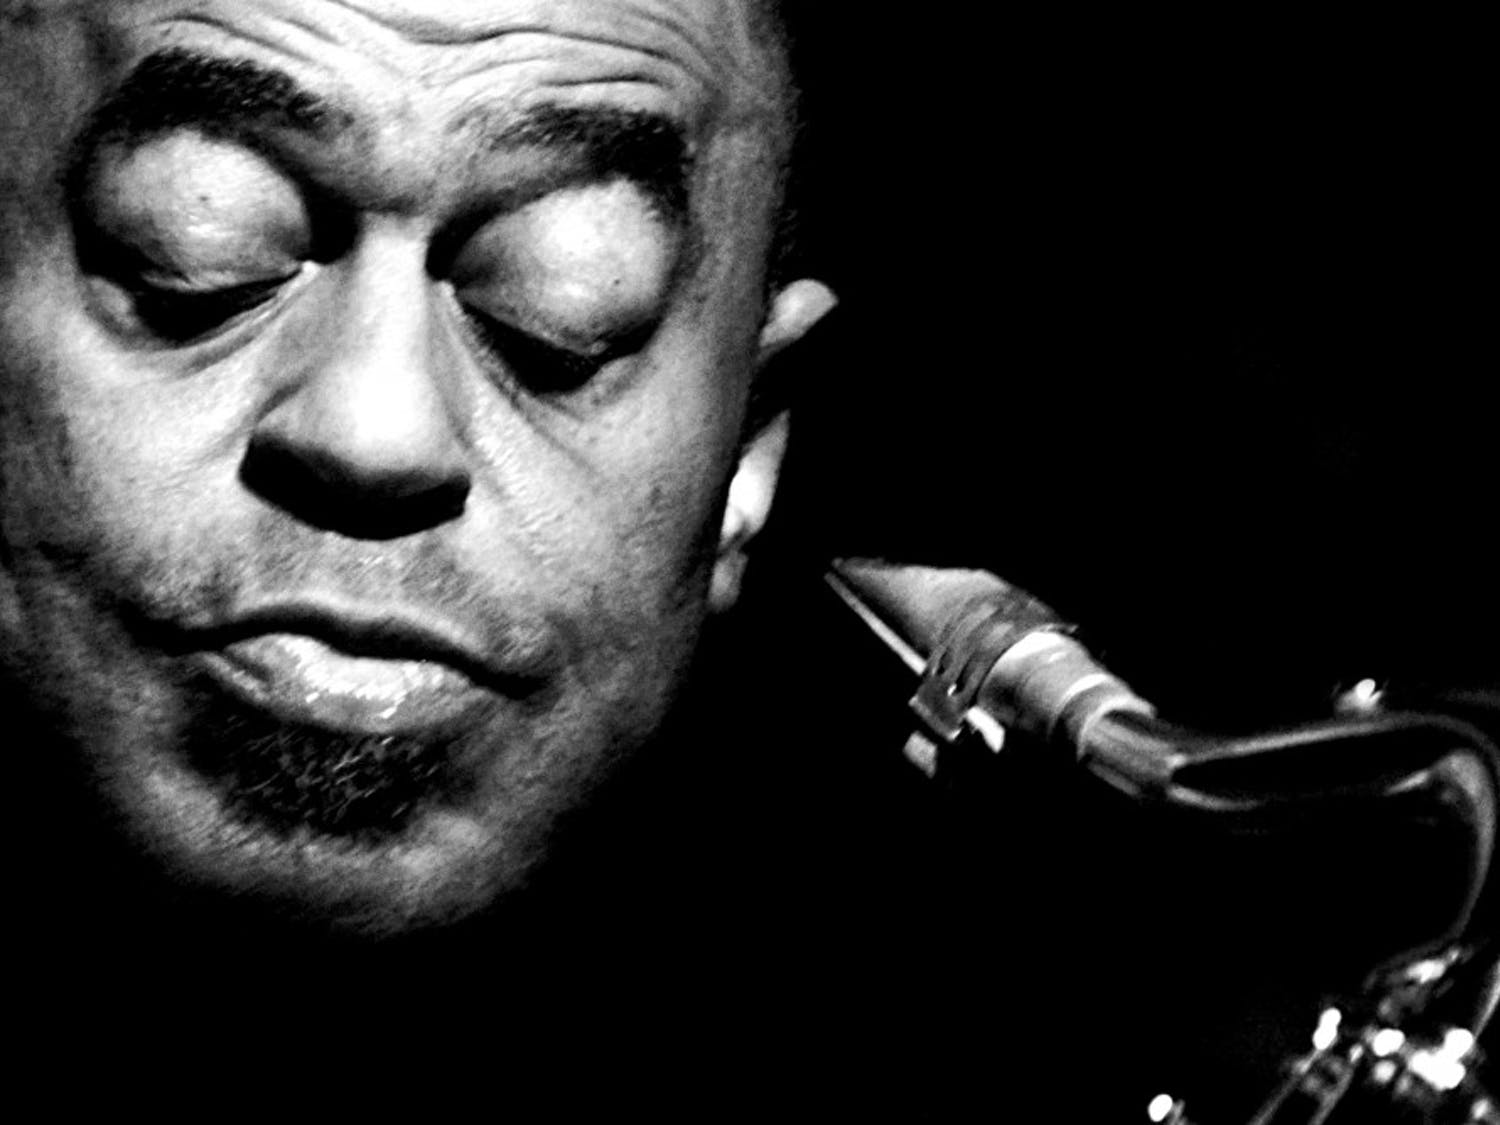 """Jazz legend Archie Shepp formerly taught in the Black Studies (now African and African-American Studies) program in the late '60s and early '70s. Shepp, now retired but still on the performance circuit, talked with The Spectrum about his ethnomusicology course along with his album """"Attica Blues."""""""